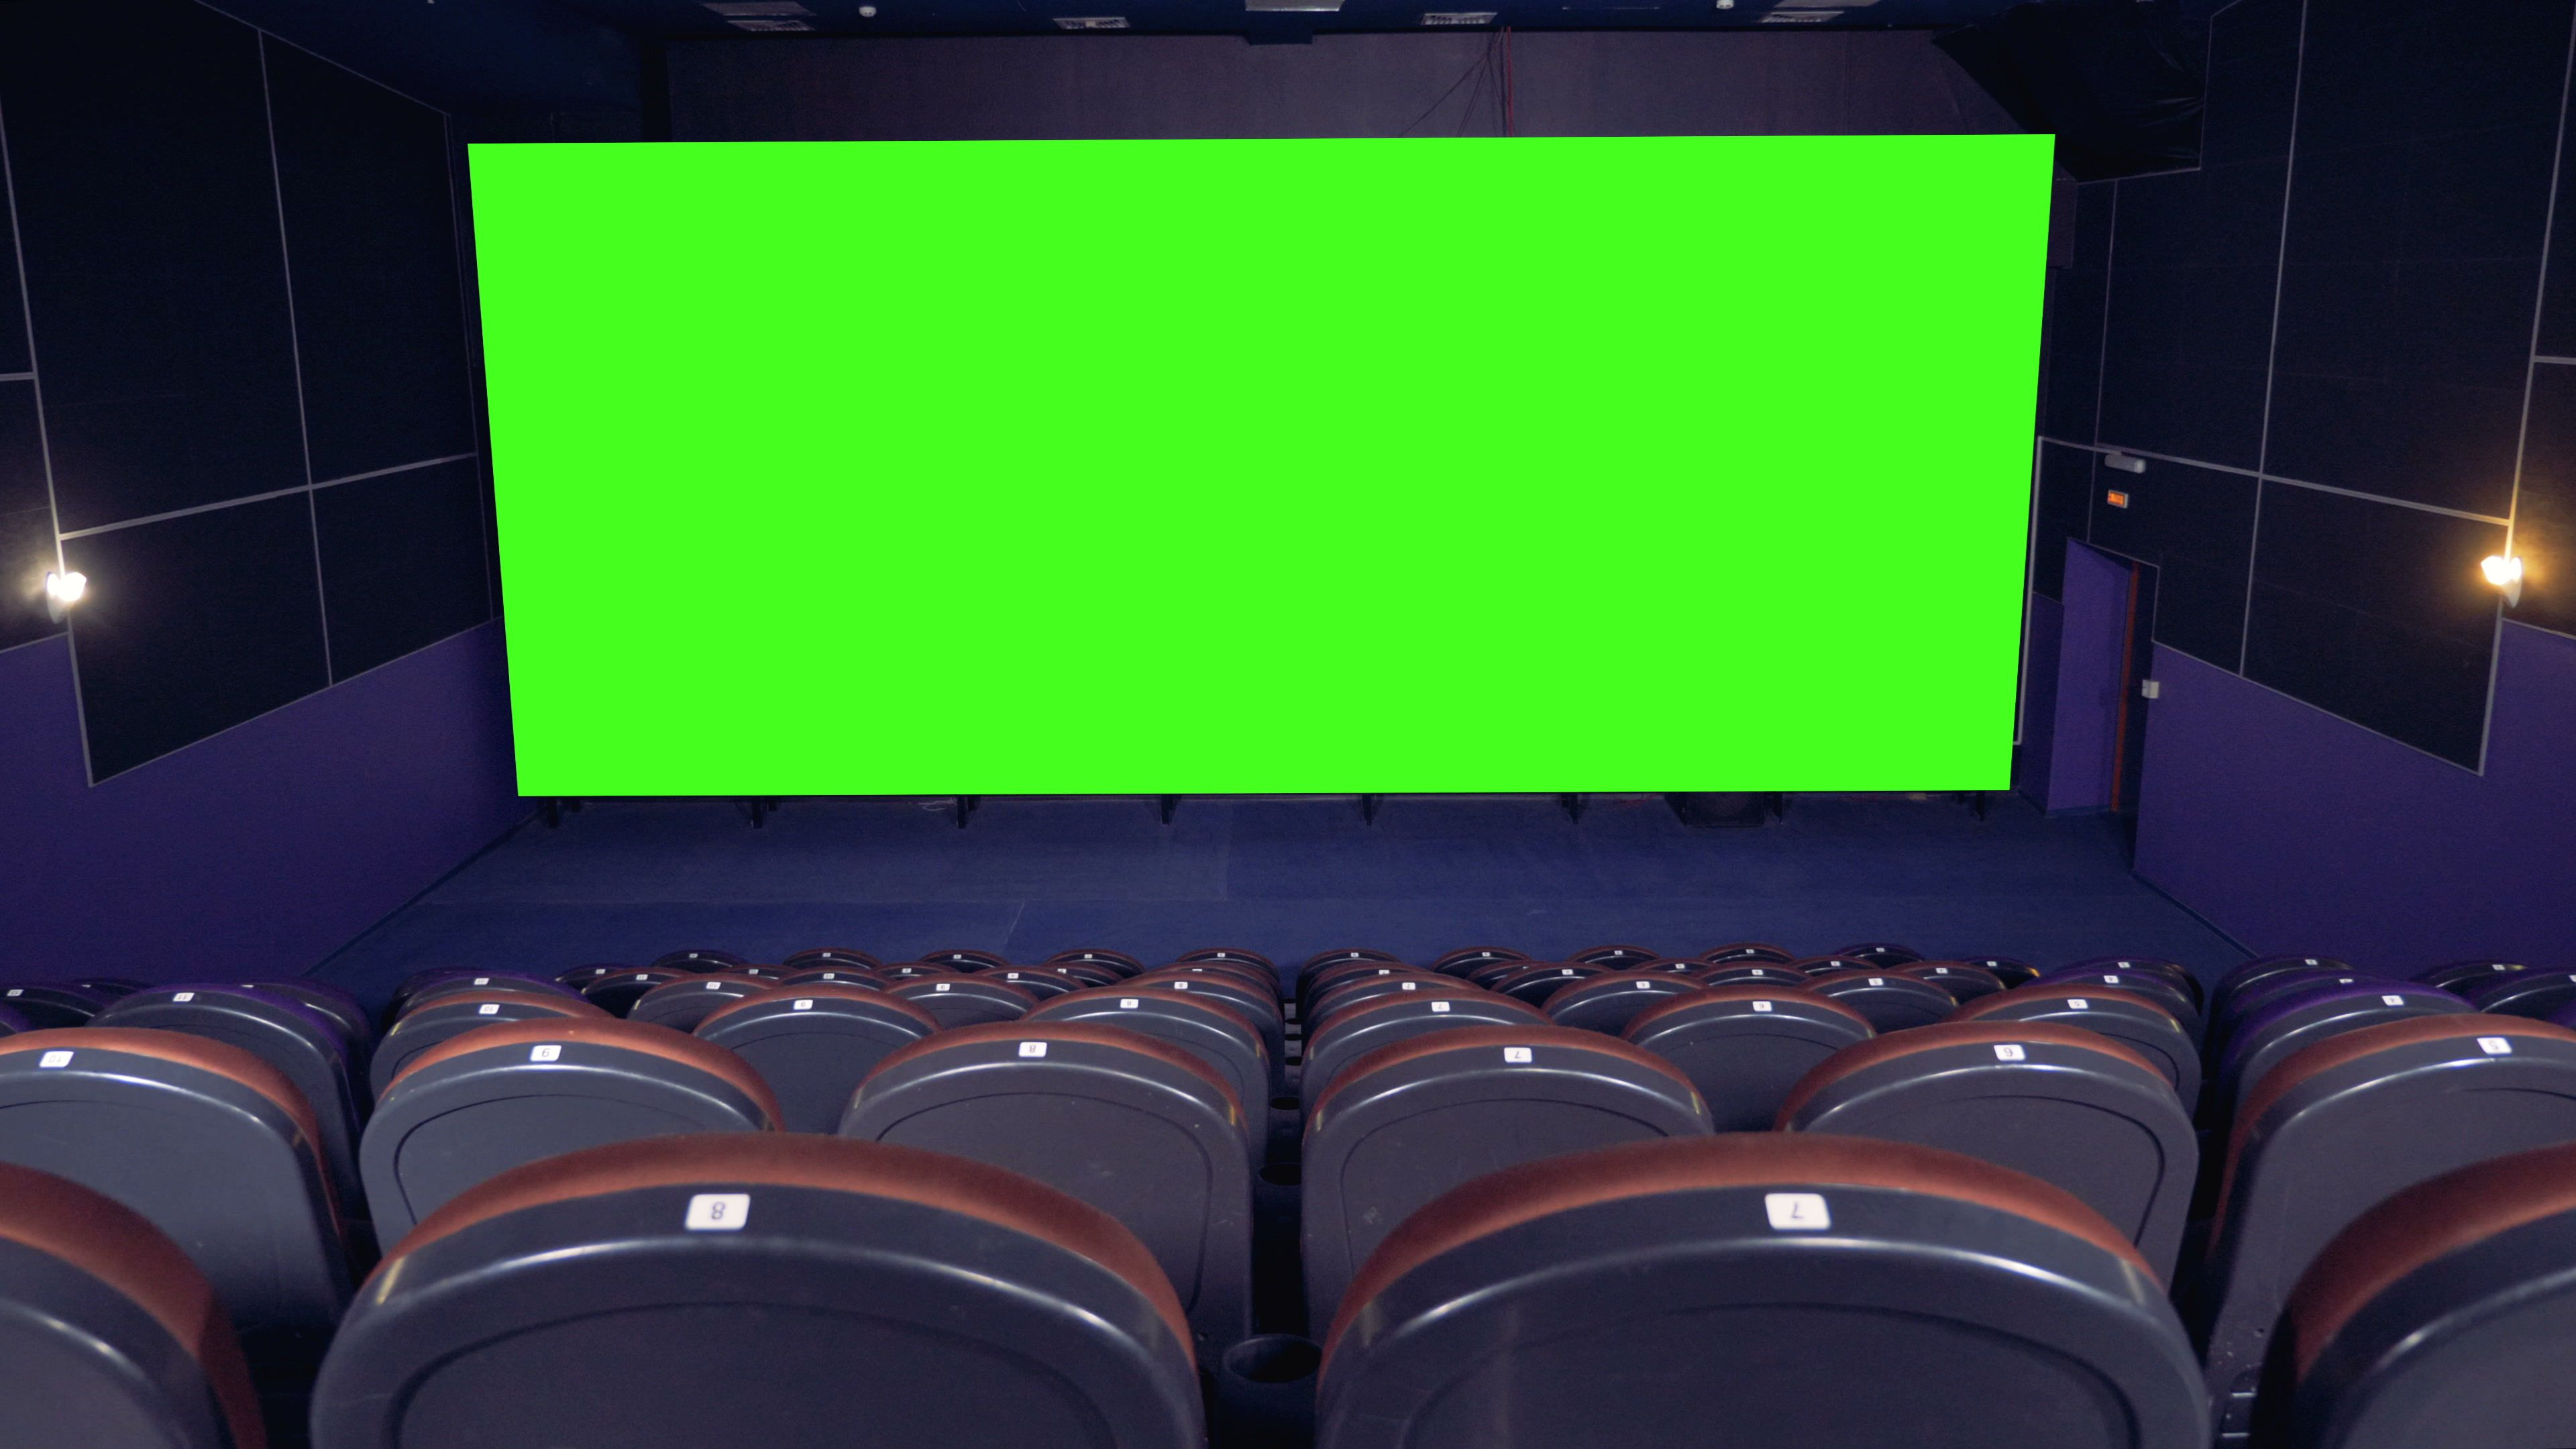 Cinema Movie Theatre With A Green Screen 4k Stock Footage Ad Theatre Movie Cinema Green In 2020 Cinema Movie Theater Cinema Movies Greenscreen